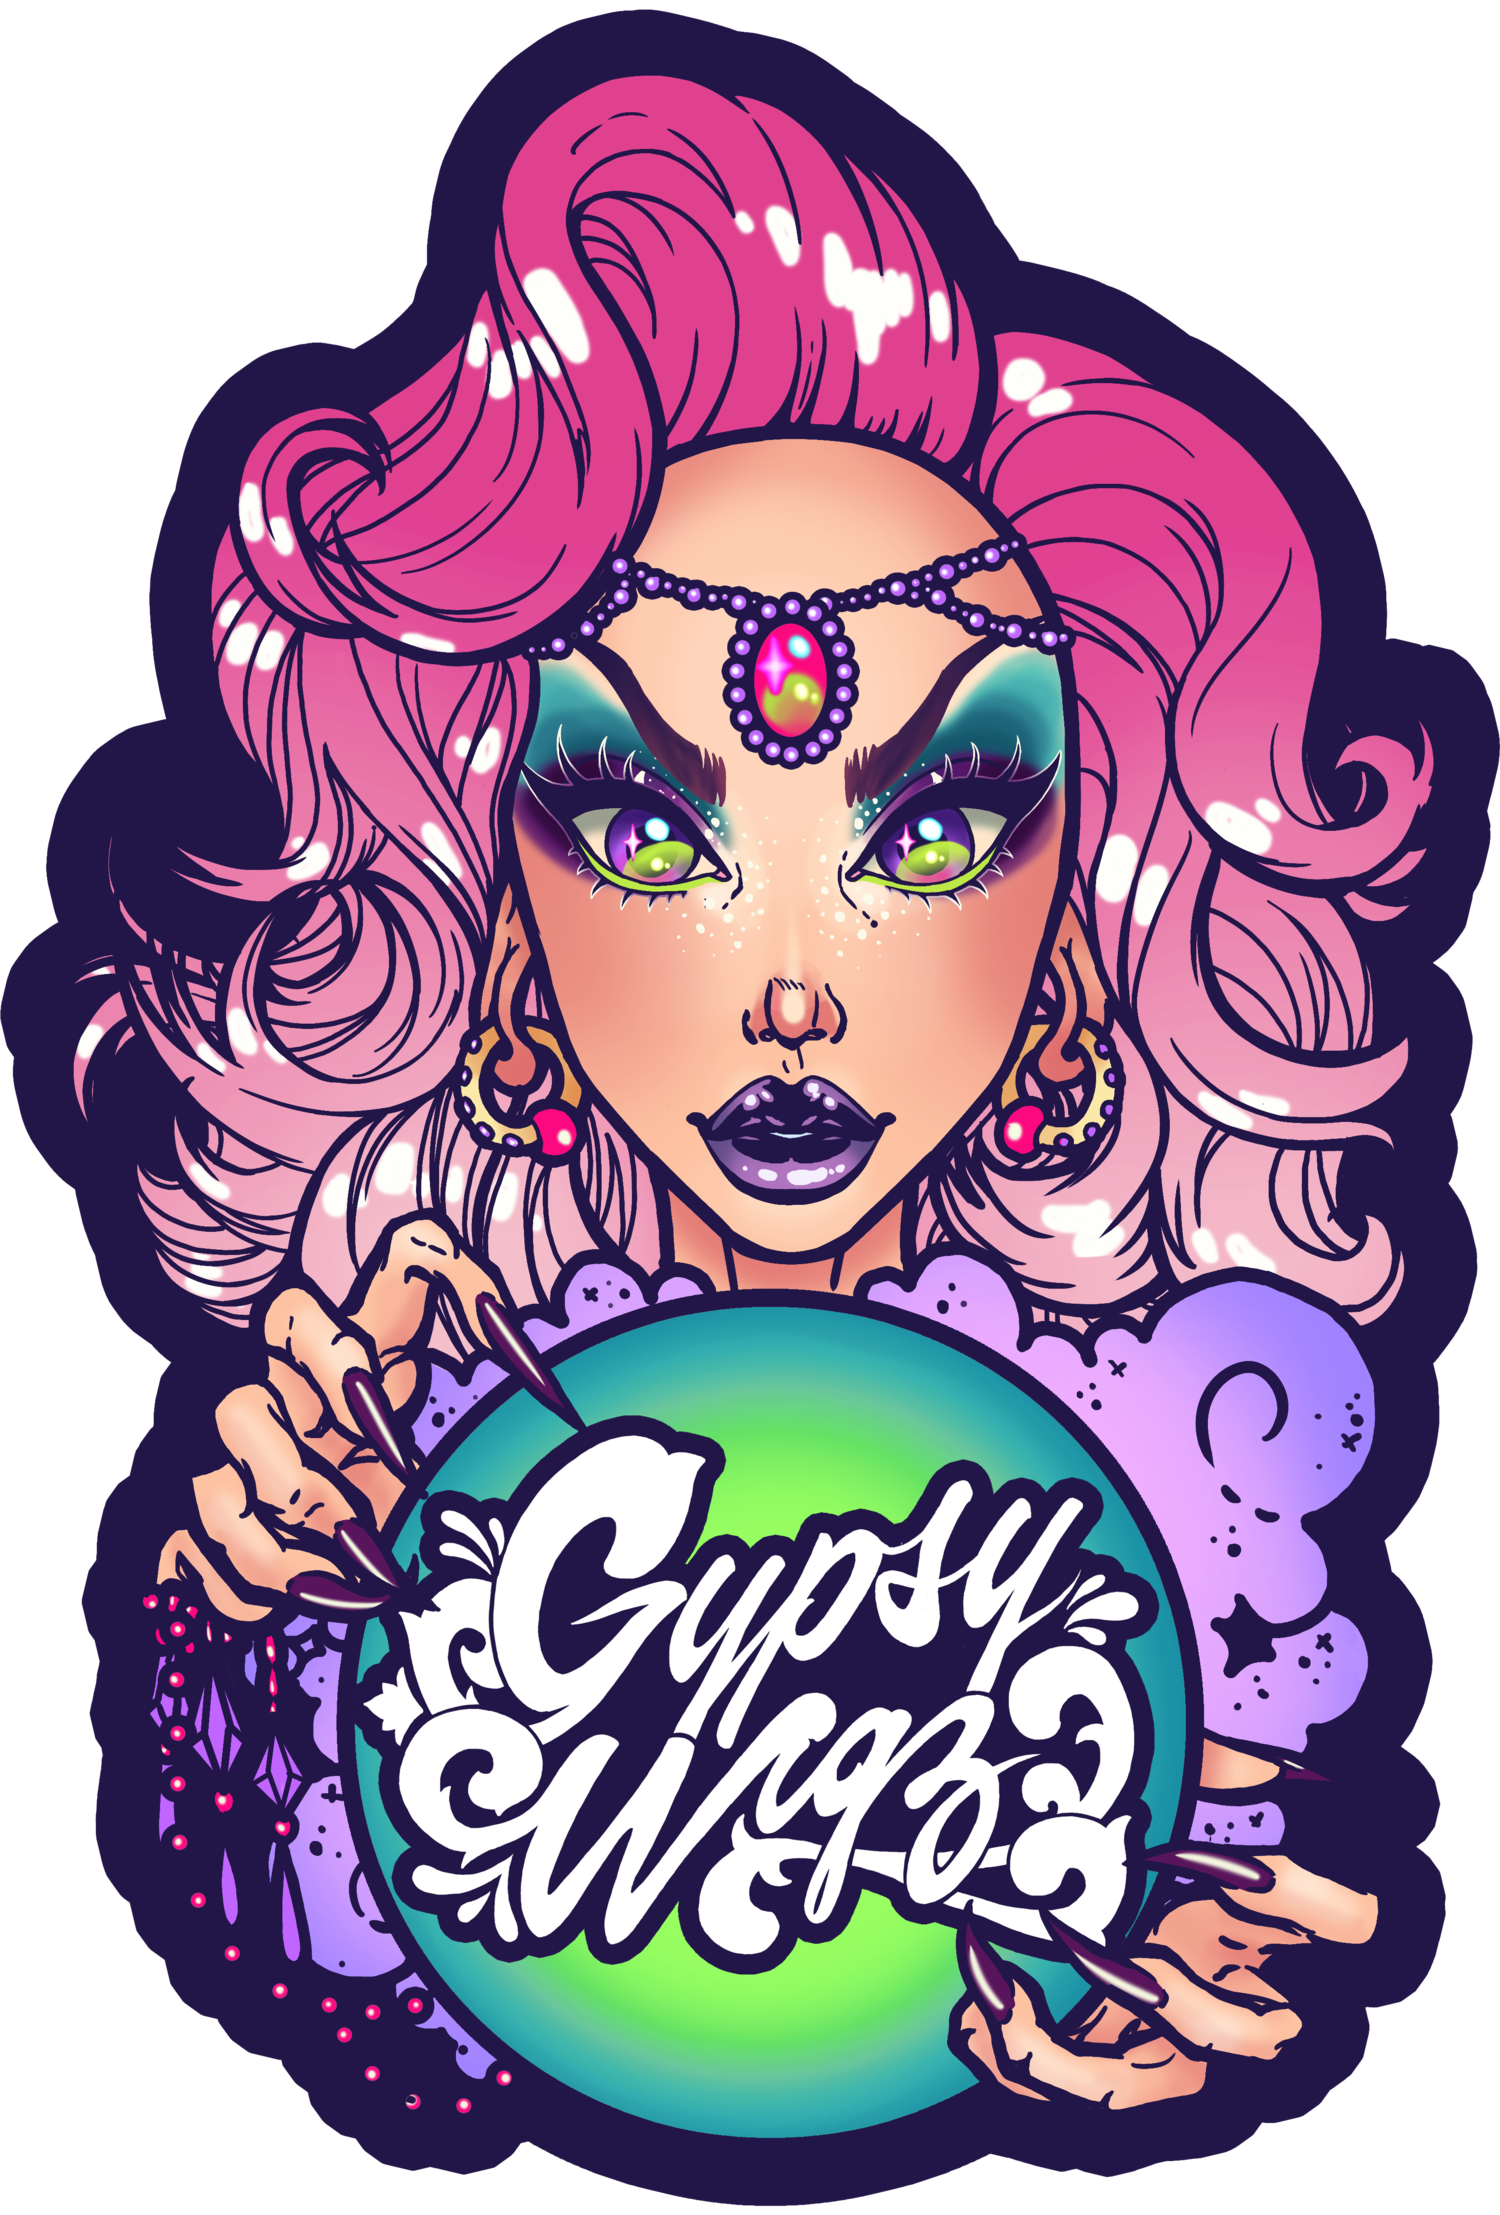 Psychic drawing gypsy woman. Collection of free gipsy